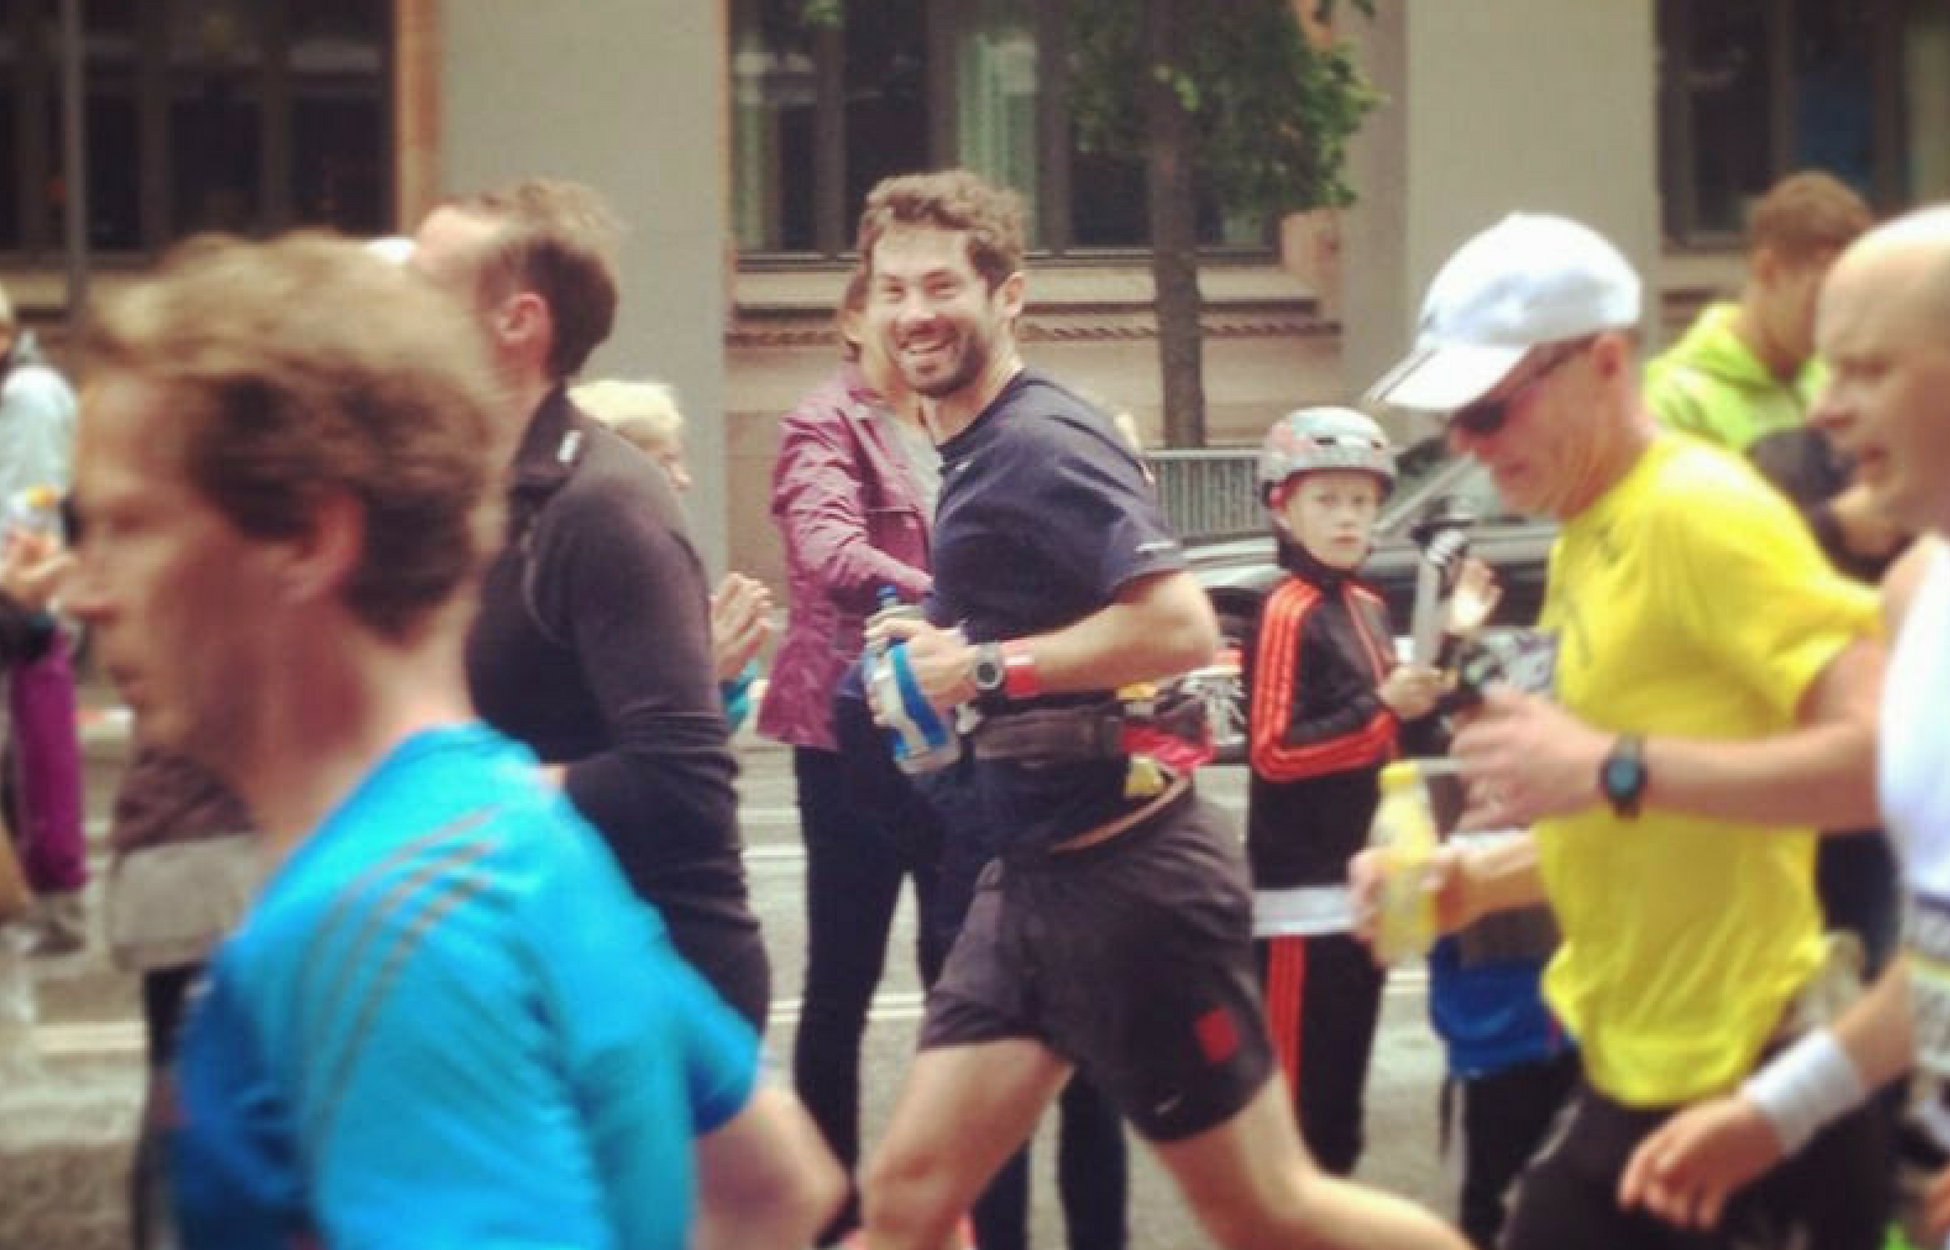 Reach Physio founder and CEO, James Read running in the Stockholm Marathon 2015